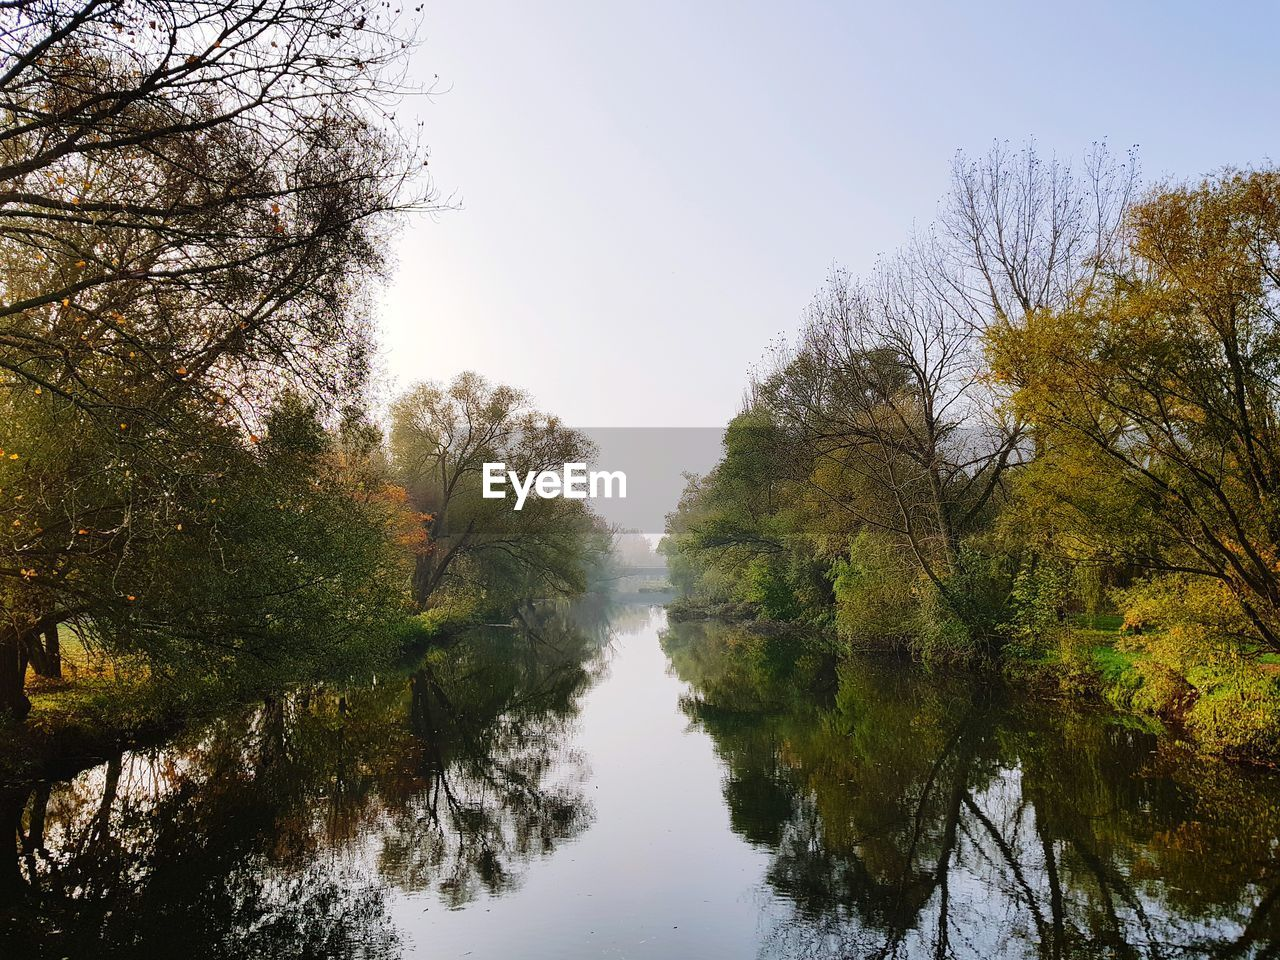 tree, plant, sky, tranquility, water, beauty in nature, tranquil scene, scenics - nature, nature, autumn, reflection, clear sky, no people, growth, day, waterfront, non-urban scene, forest, idyllic, change, outdoors, canal